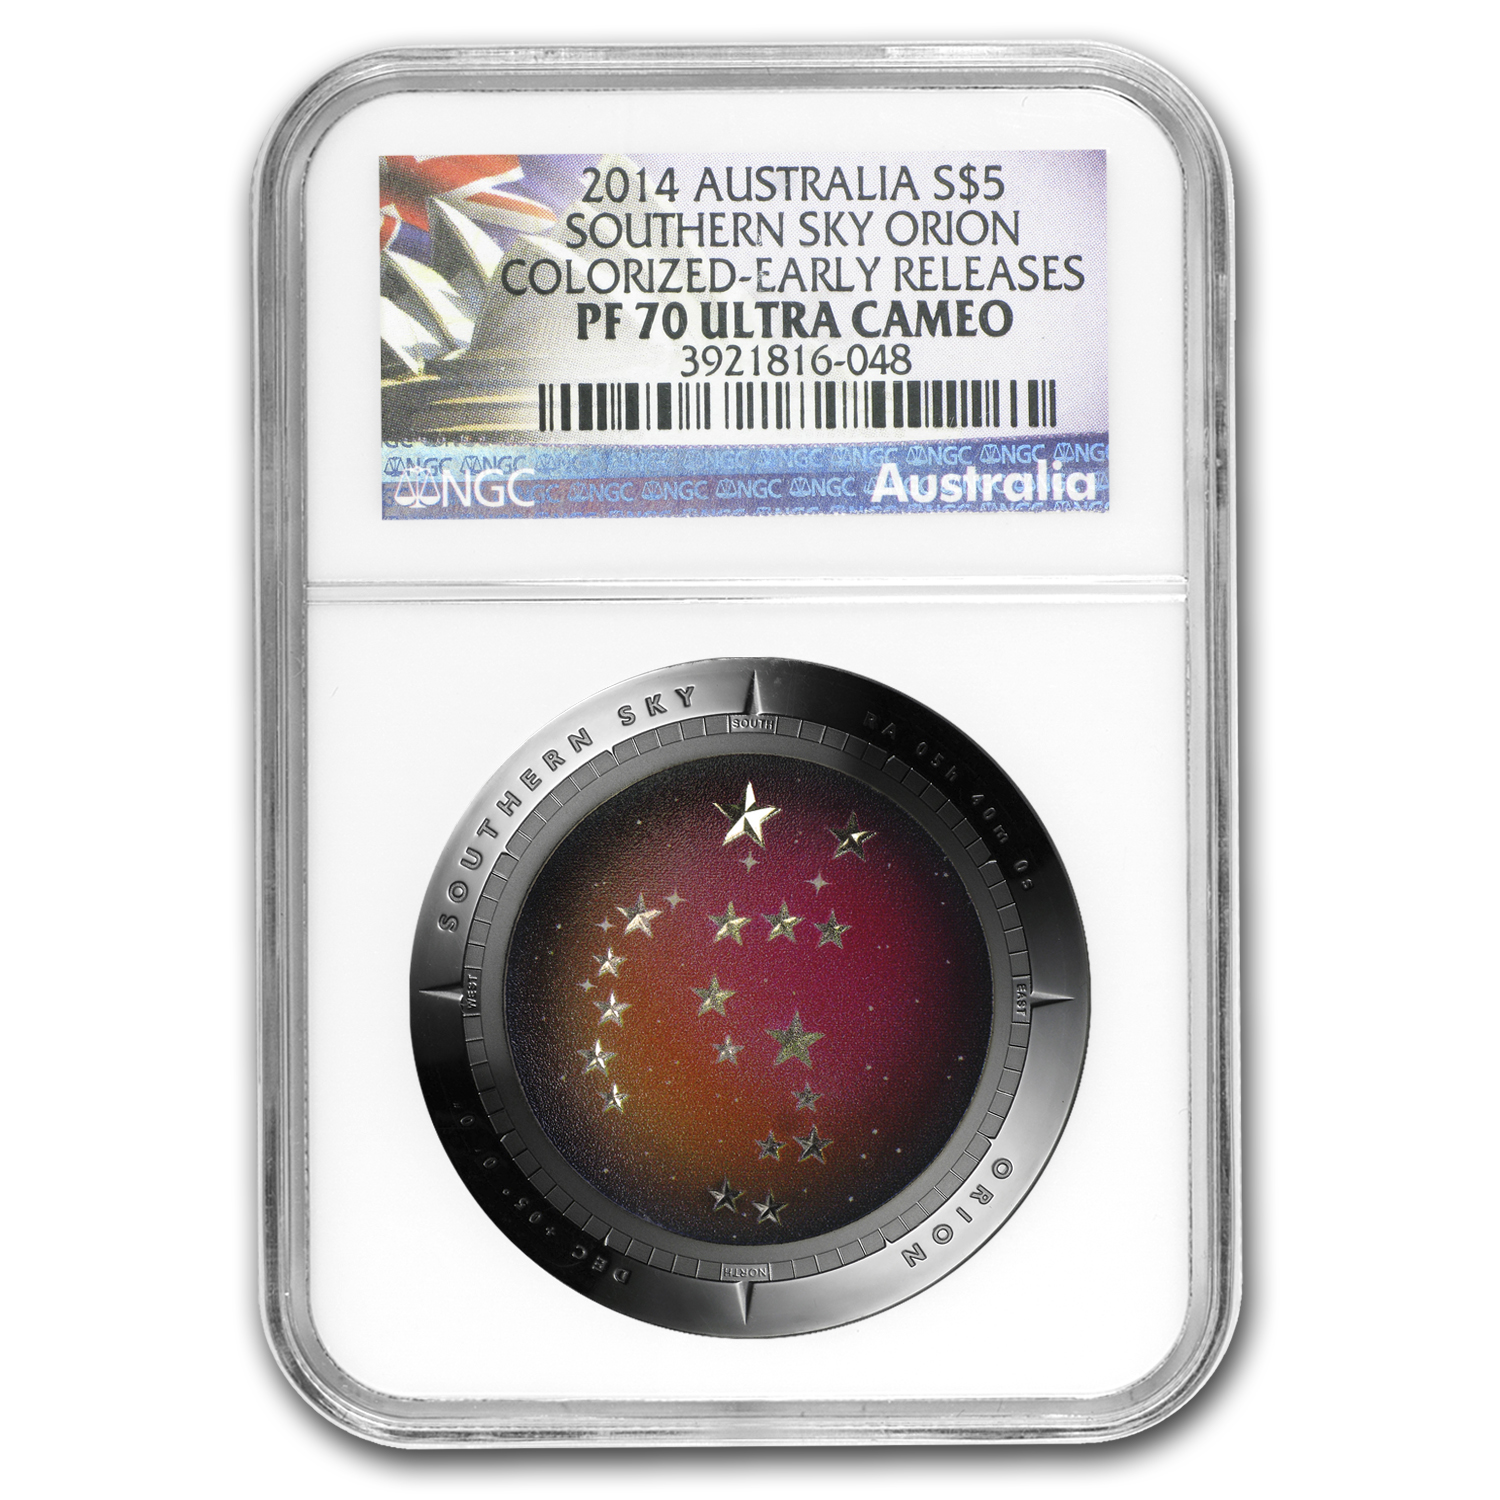 2014 Australia Silver $5 Color Domed Southern Sky Orion PF-70 NGC